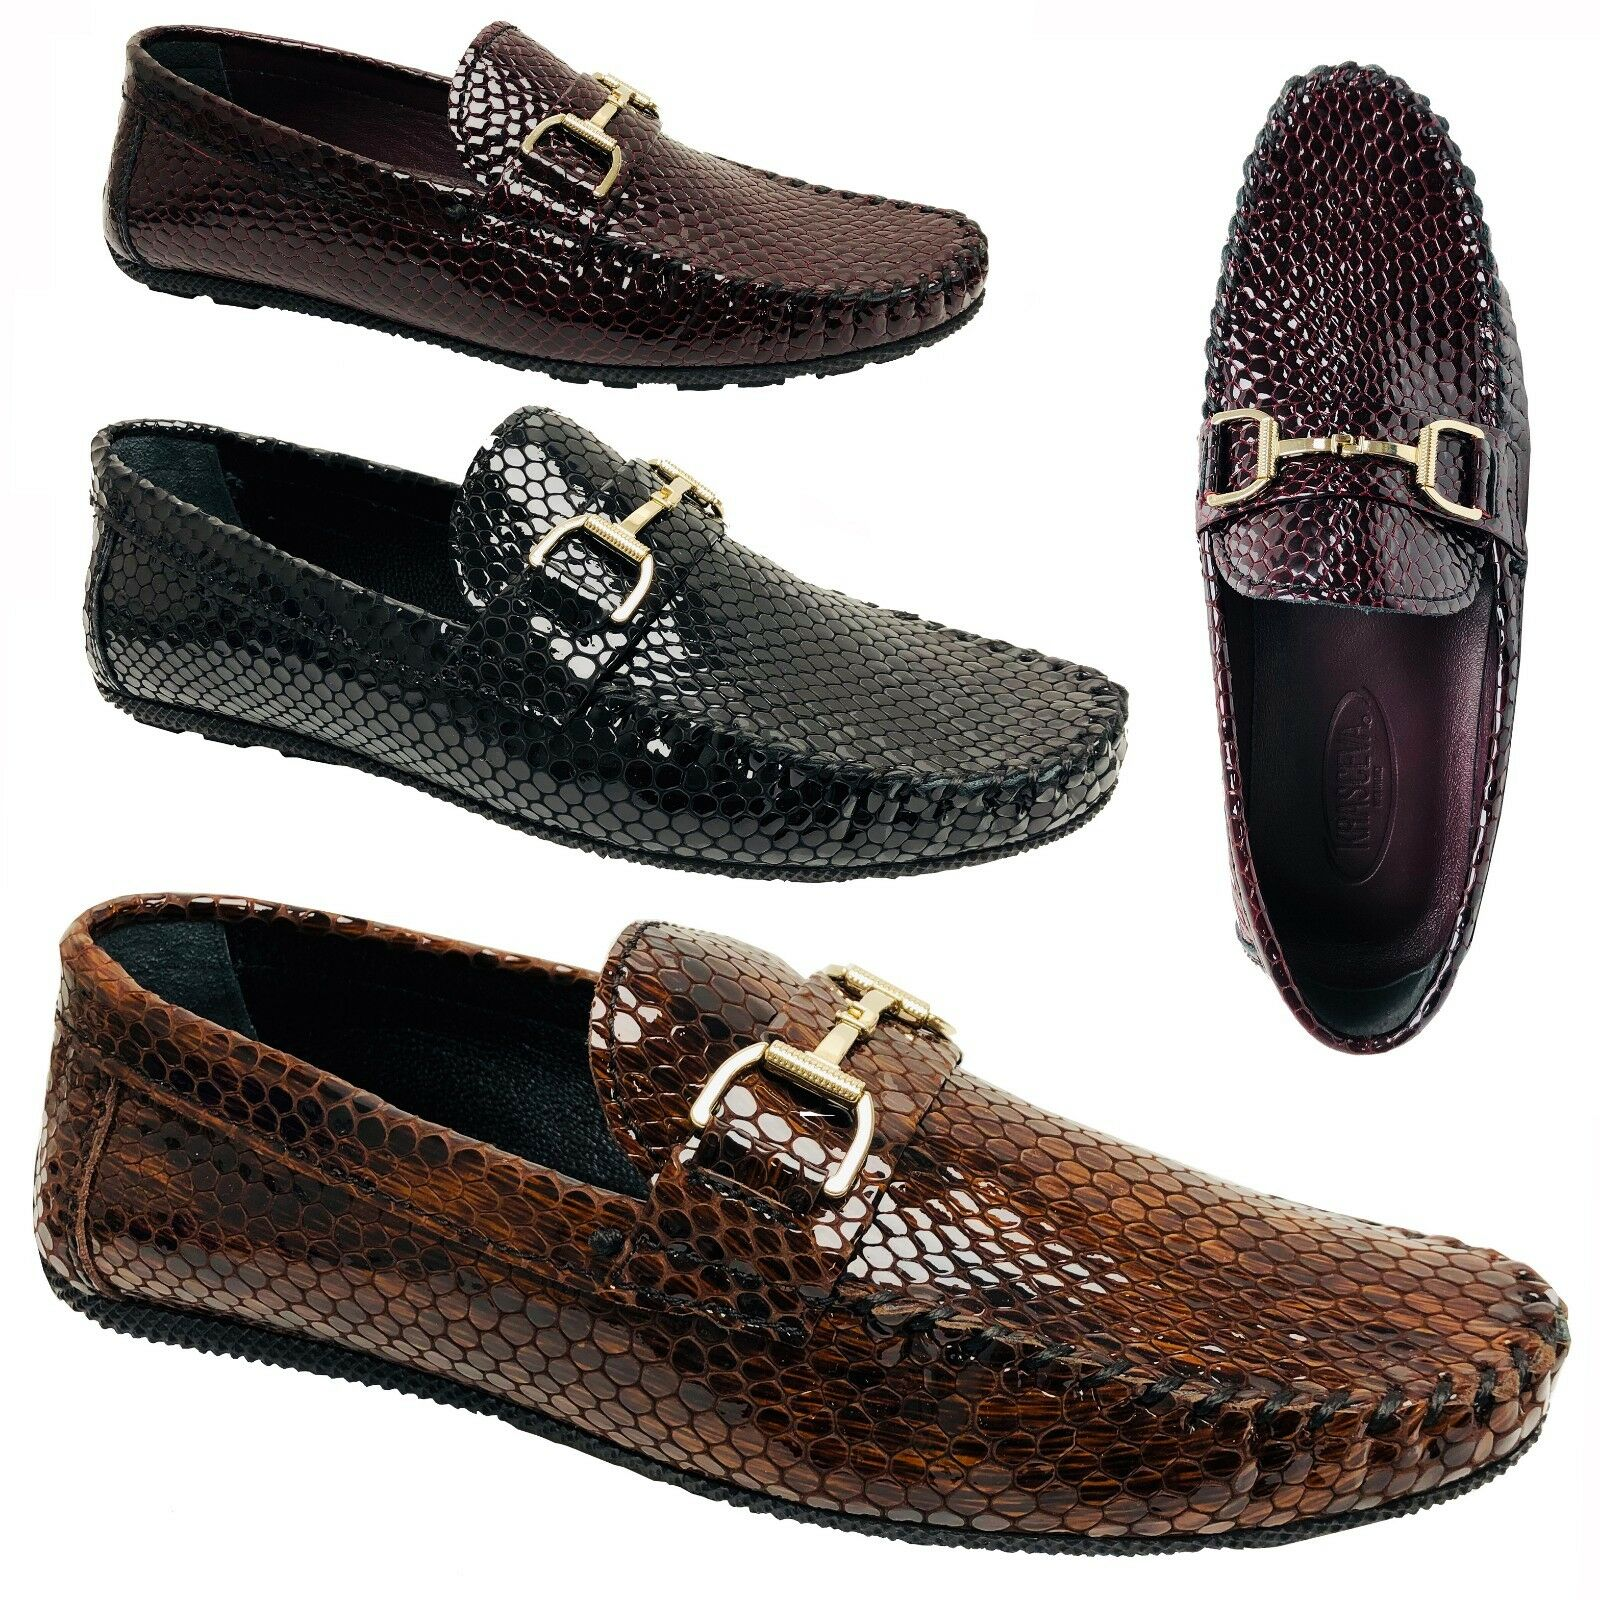 Mens Real Leather Loafers Driving Shoes Snake print Smart Horsebit Slip On Size